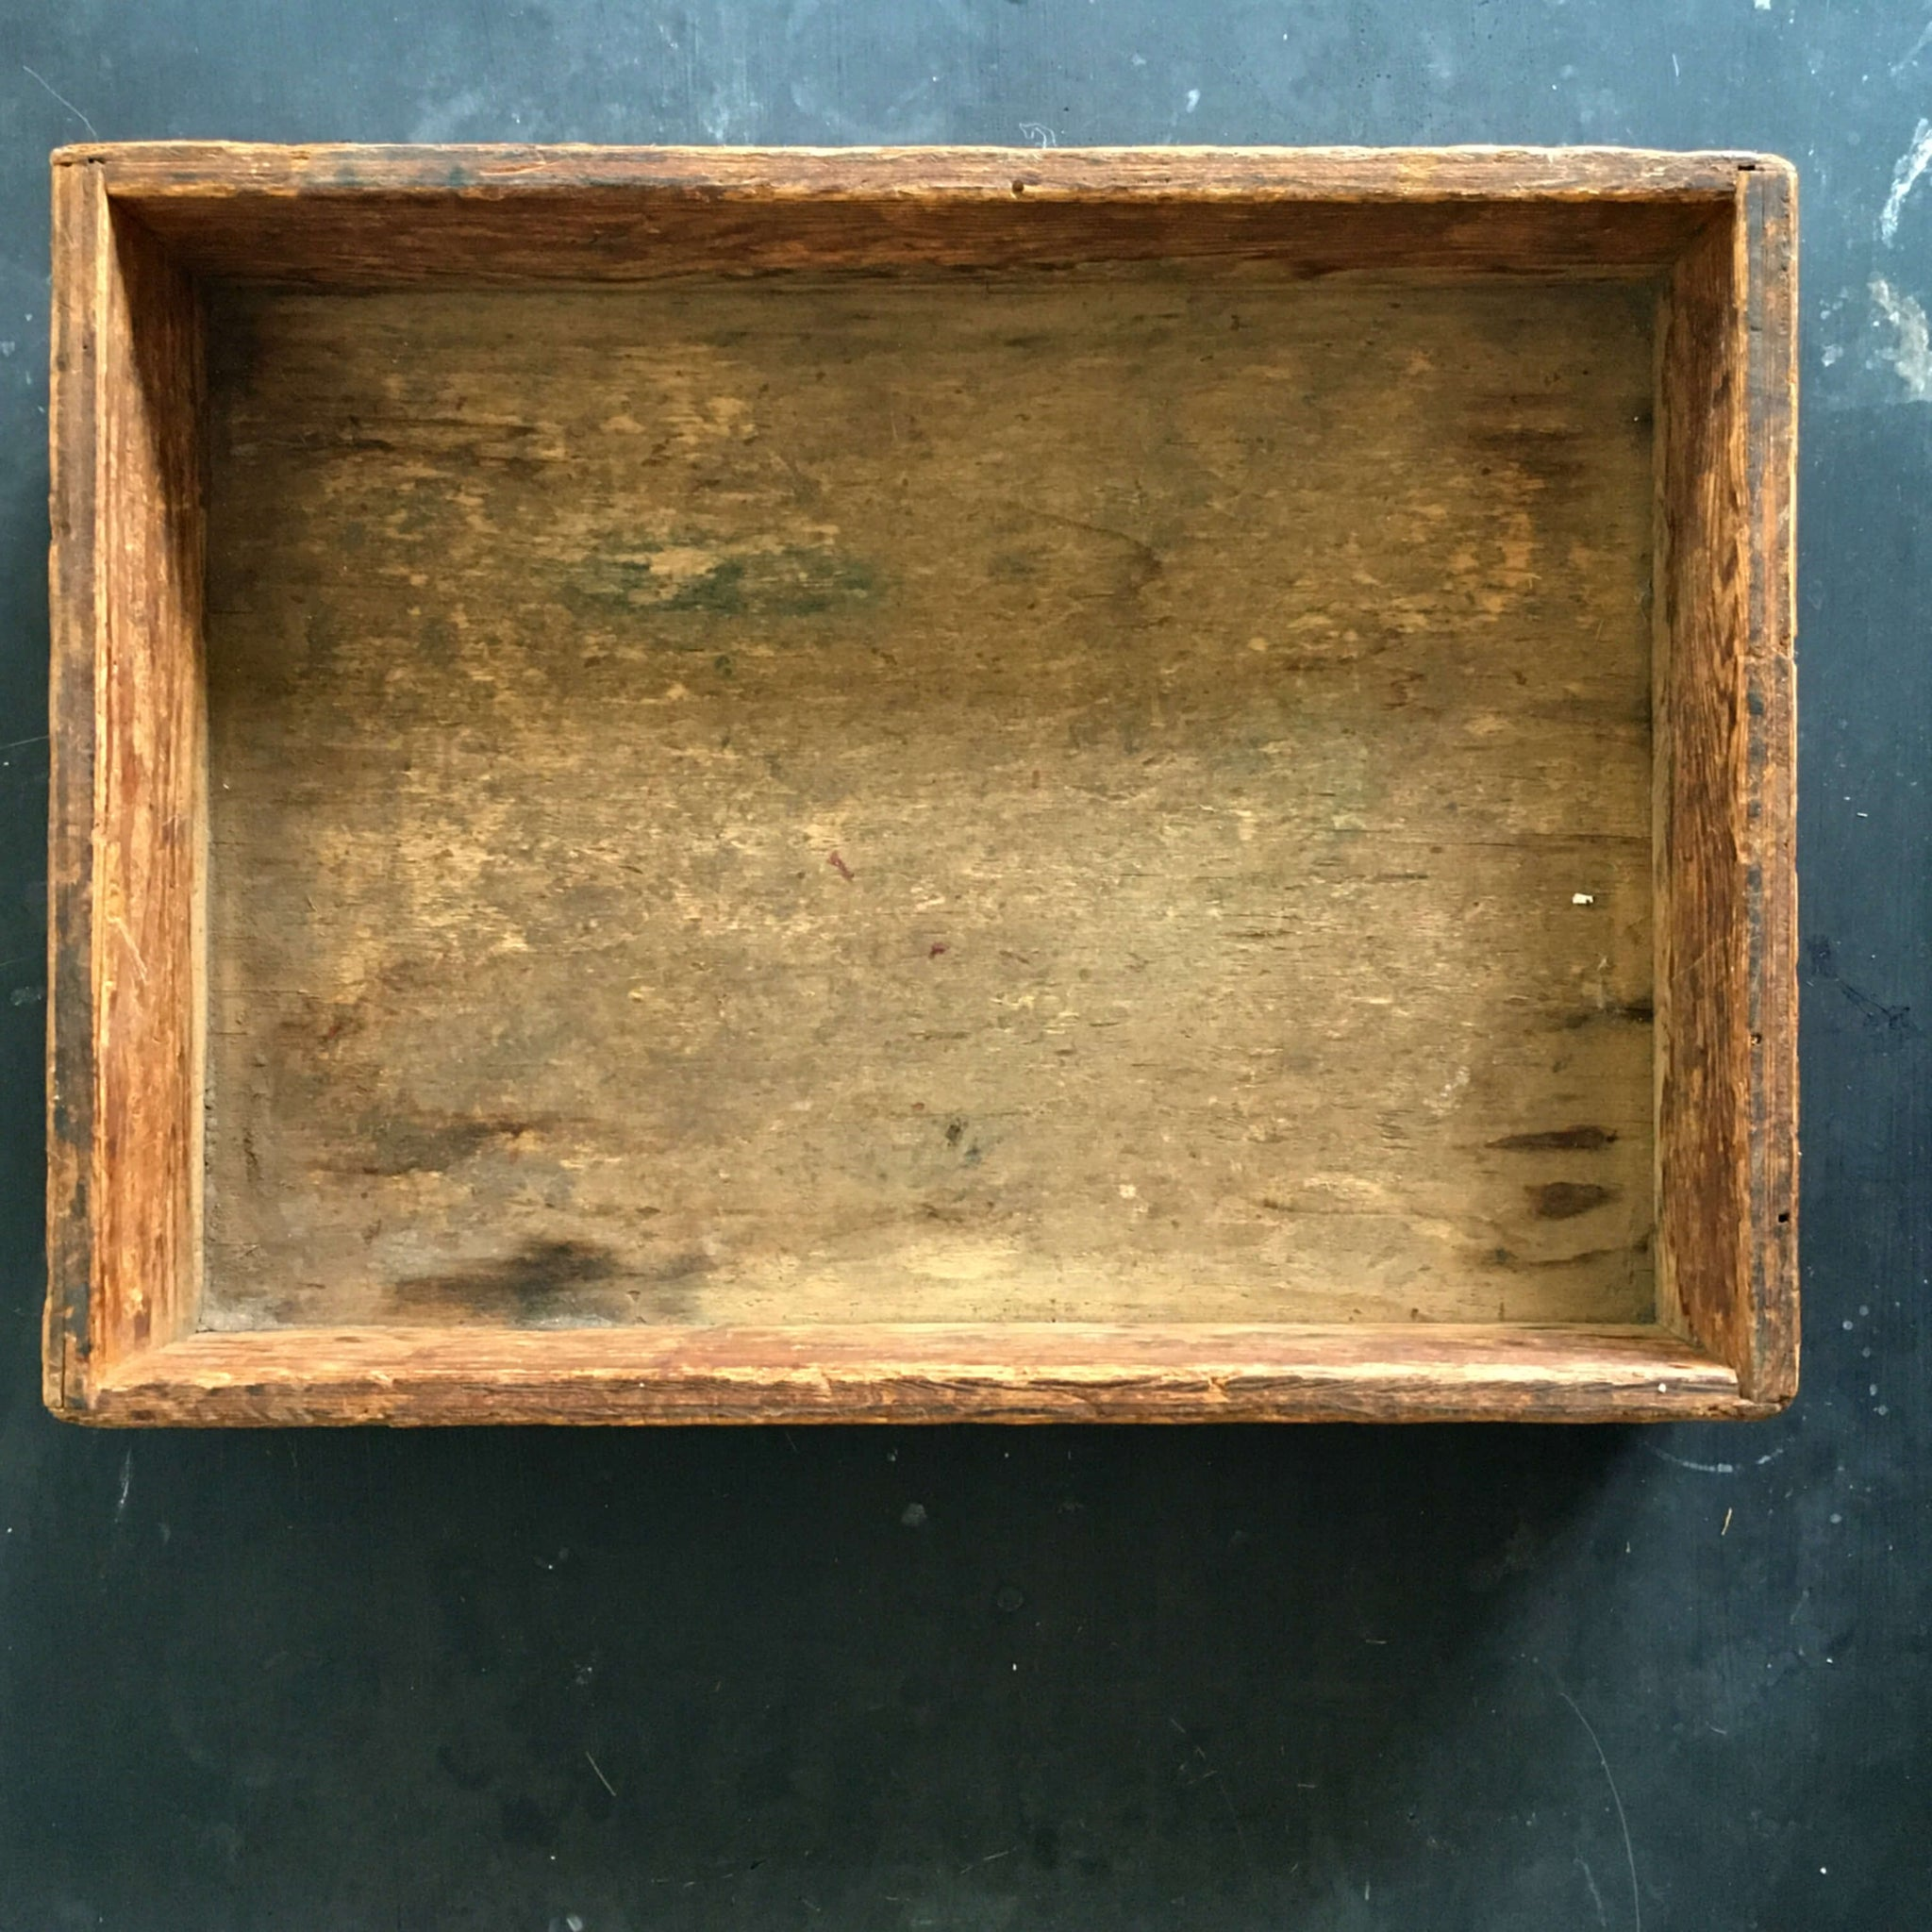 Antique Wood Tray Crate Box - 11x15 Storage Container Circa early 1900's